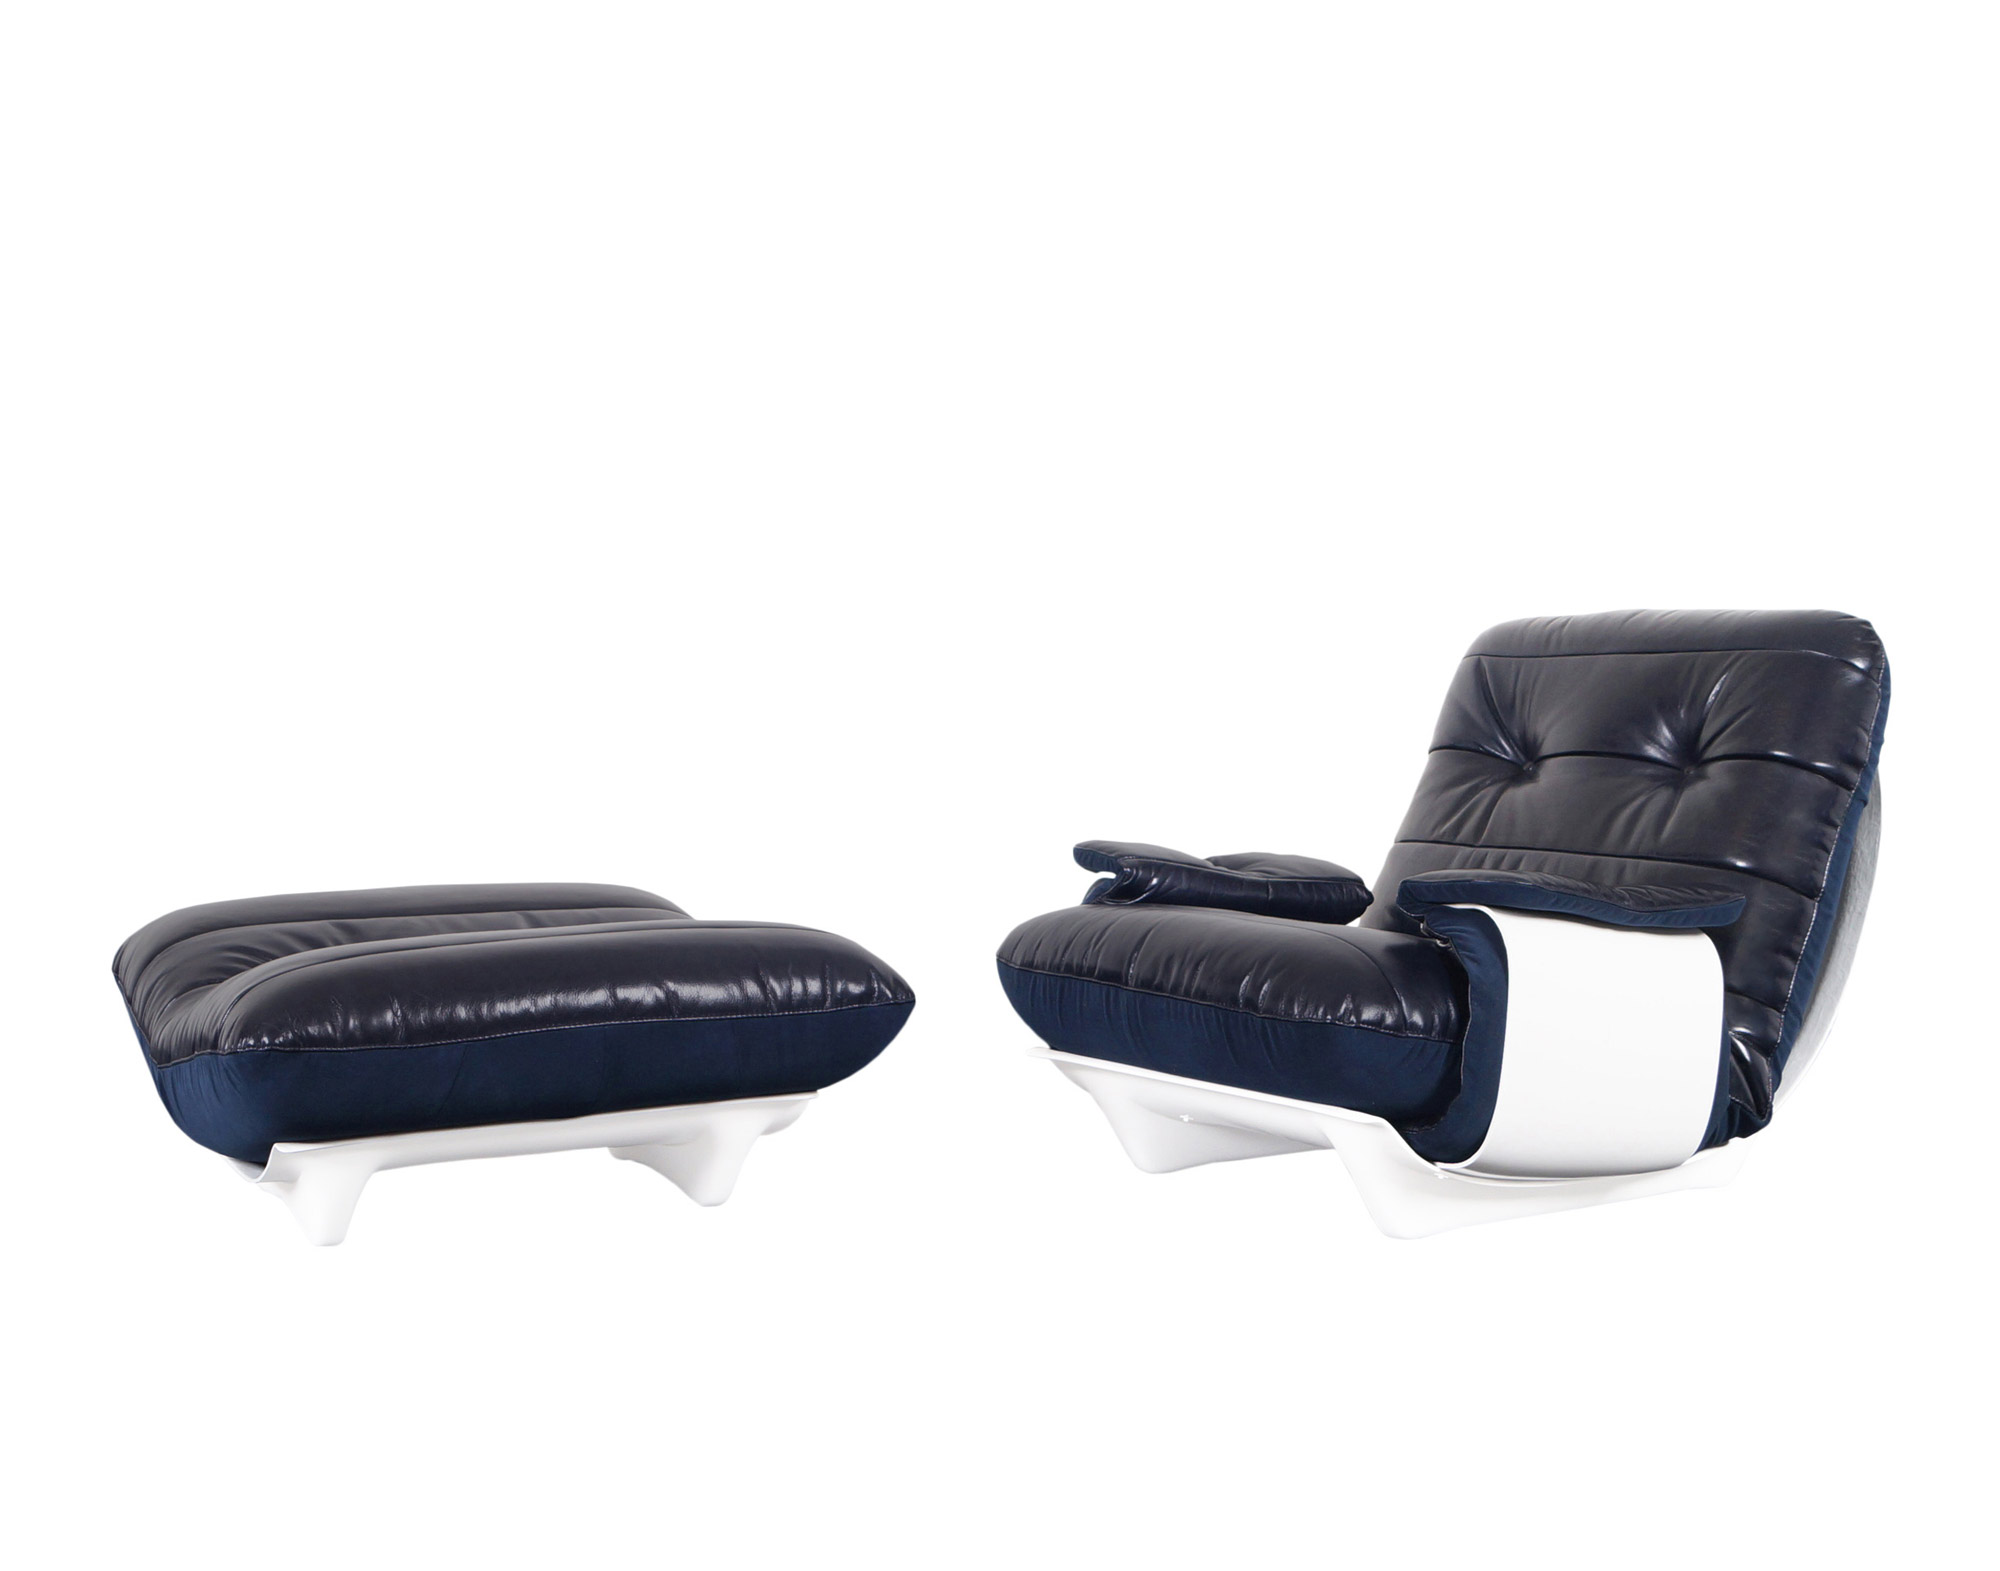 French Leather Marsala Lounge Chair and Ottoman by Michel Ducaroy